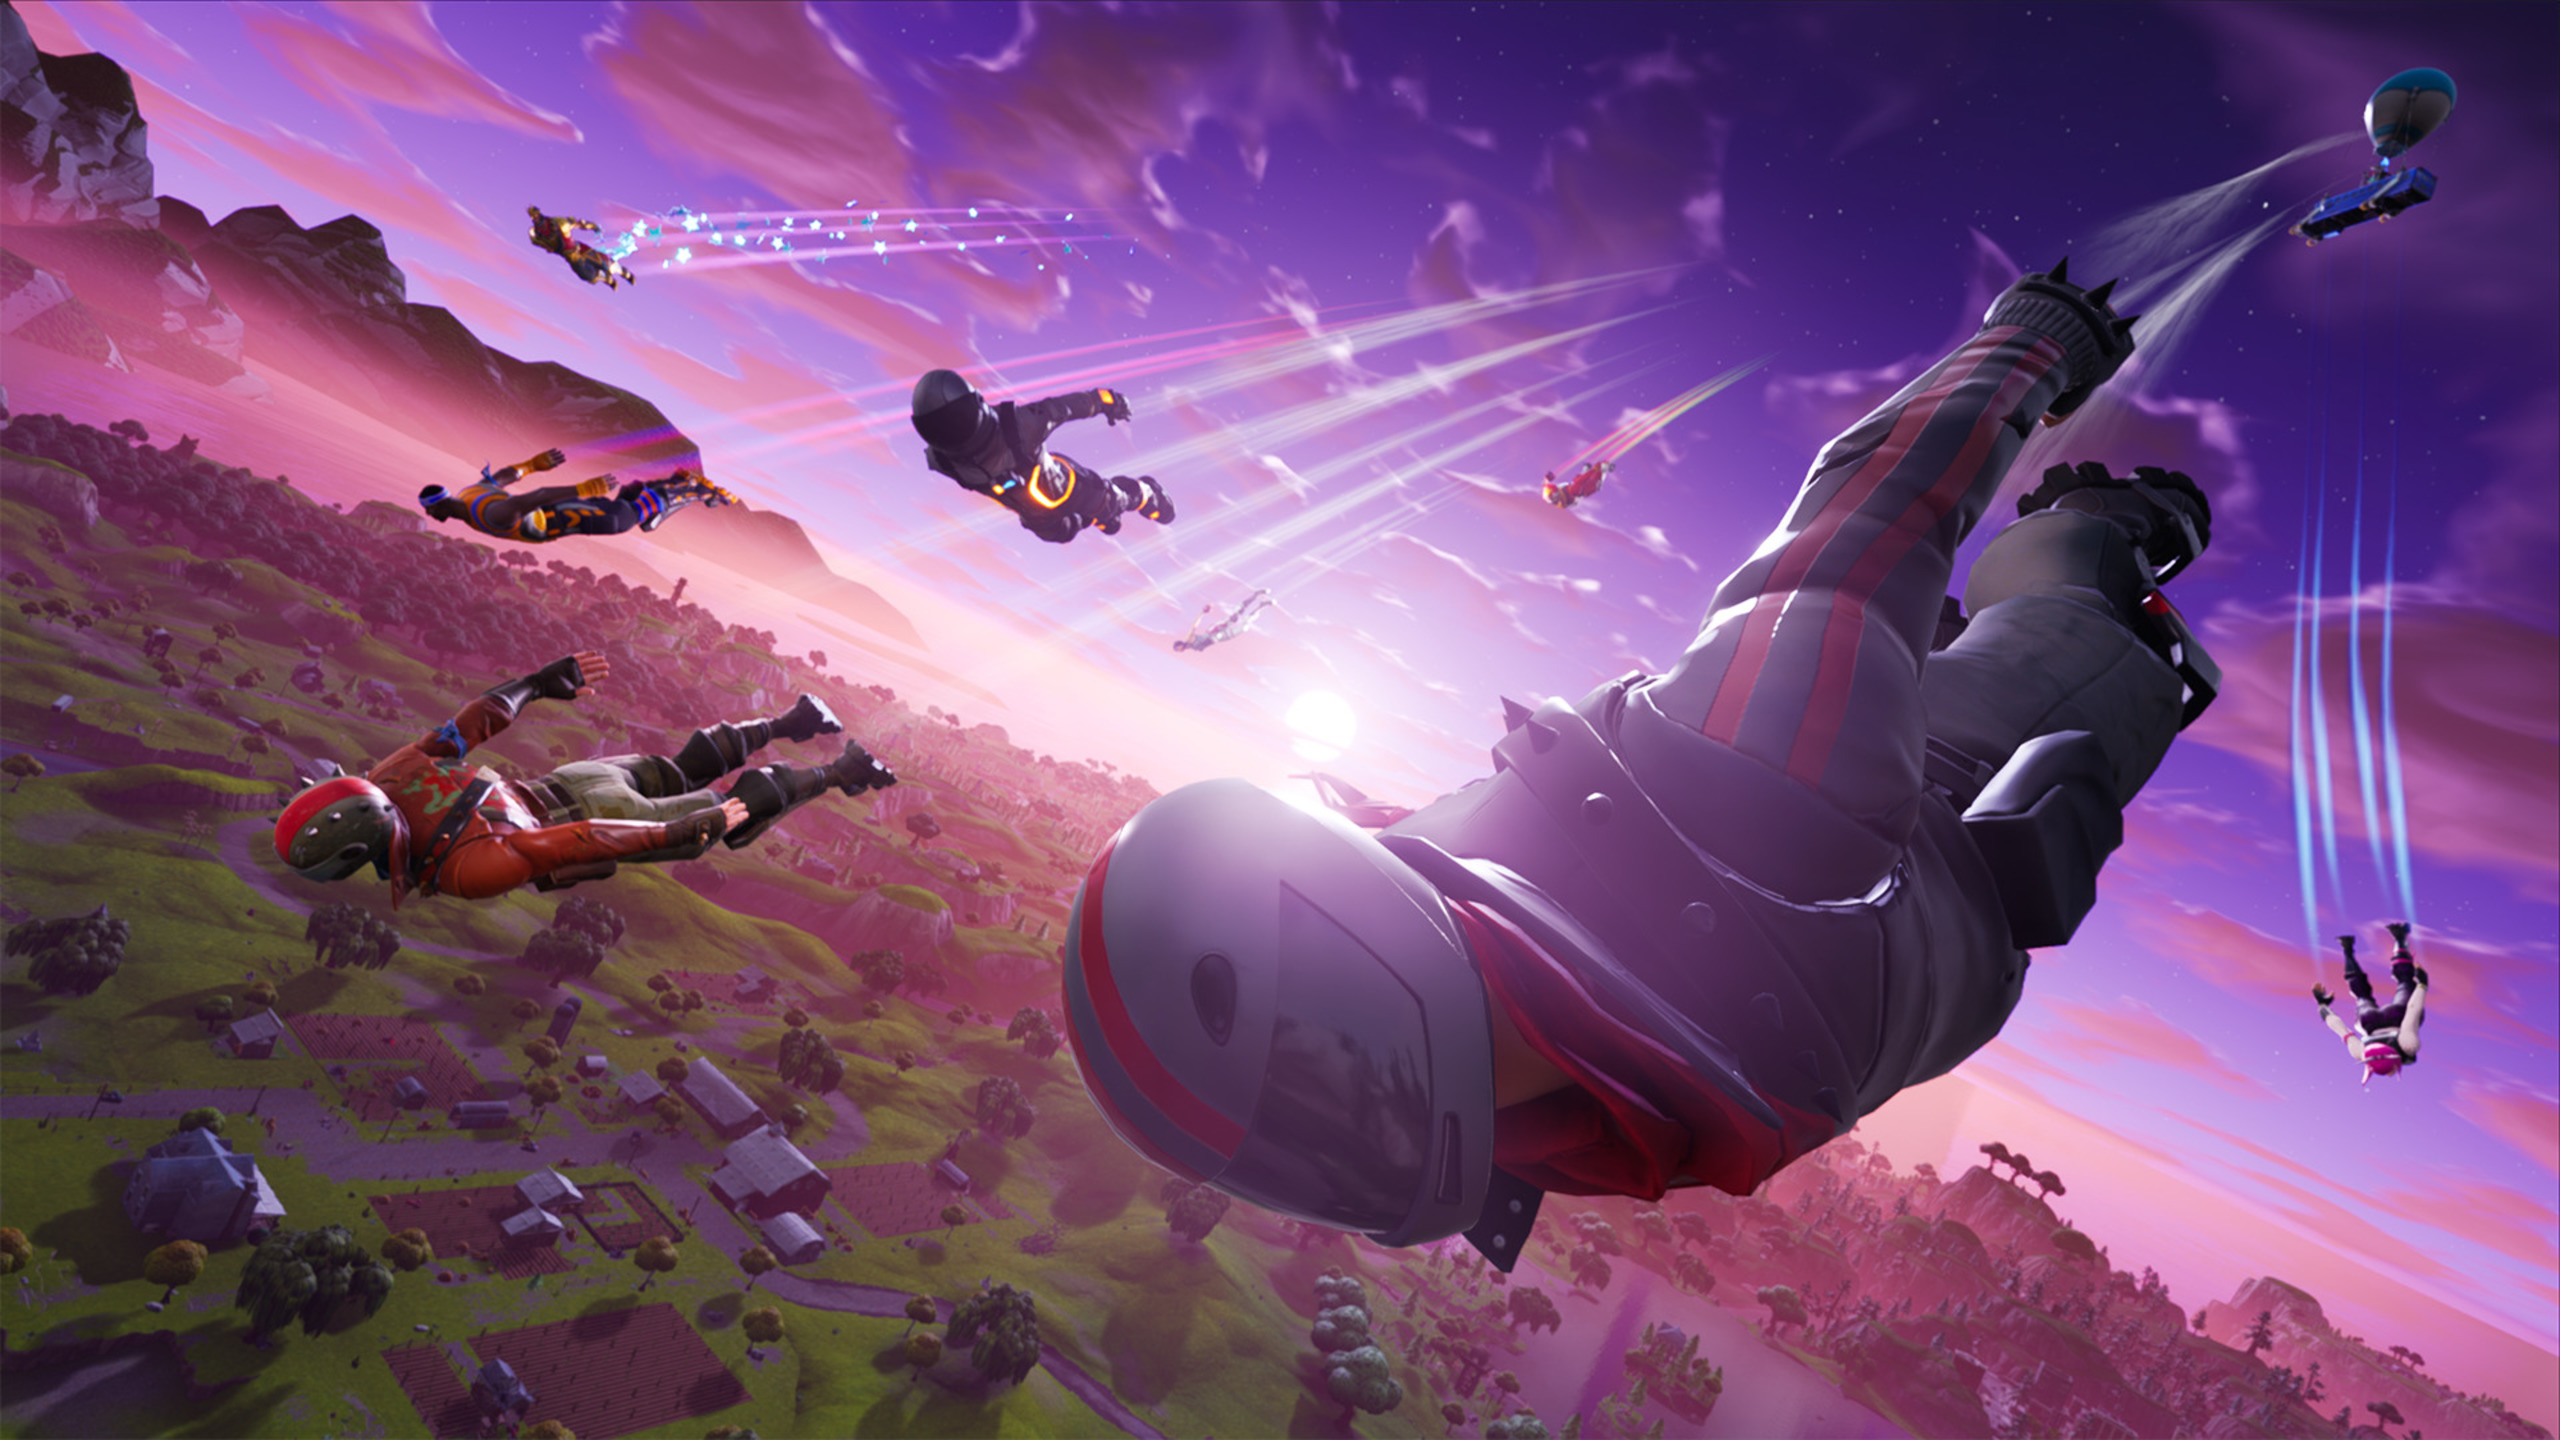 25 Fortnite Battle Royal Hd Wallpapers On Wallpapersafari